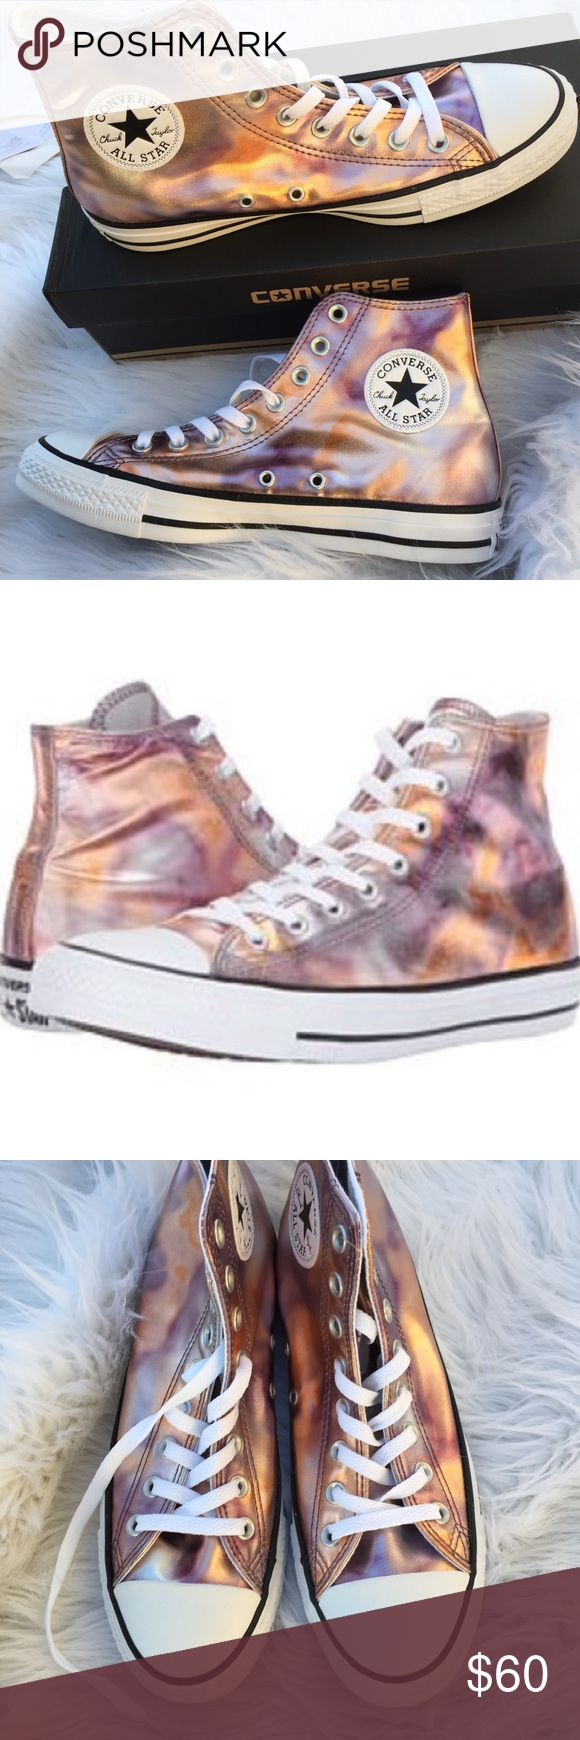 Unisex metallic high top Converse Awesome mix of metallic colors, sized according to unisex sizes. Men's size 7 Women's size 9. New in box from non smoking home Converse Shoes Sneakers